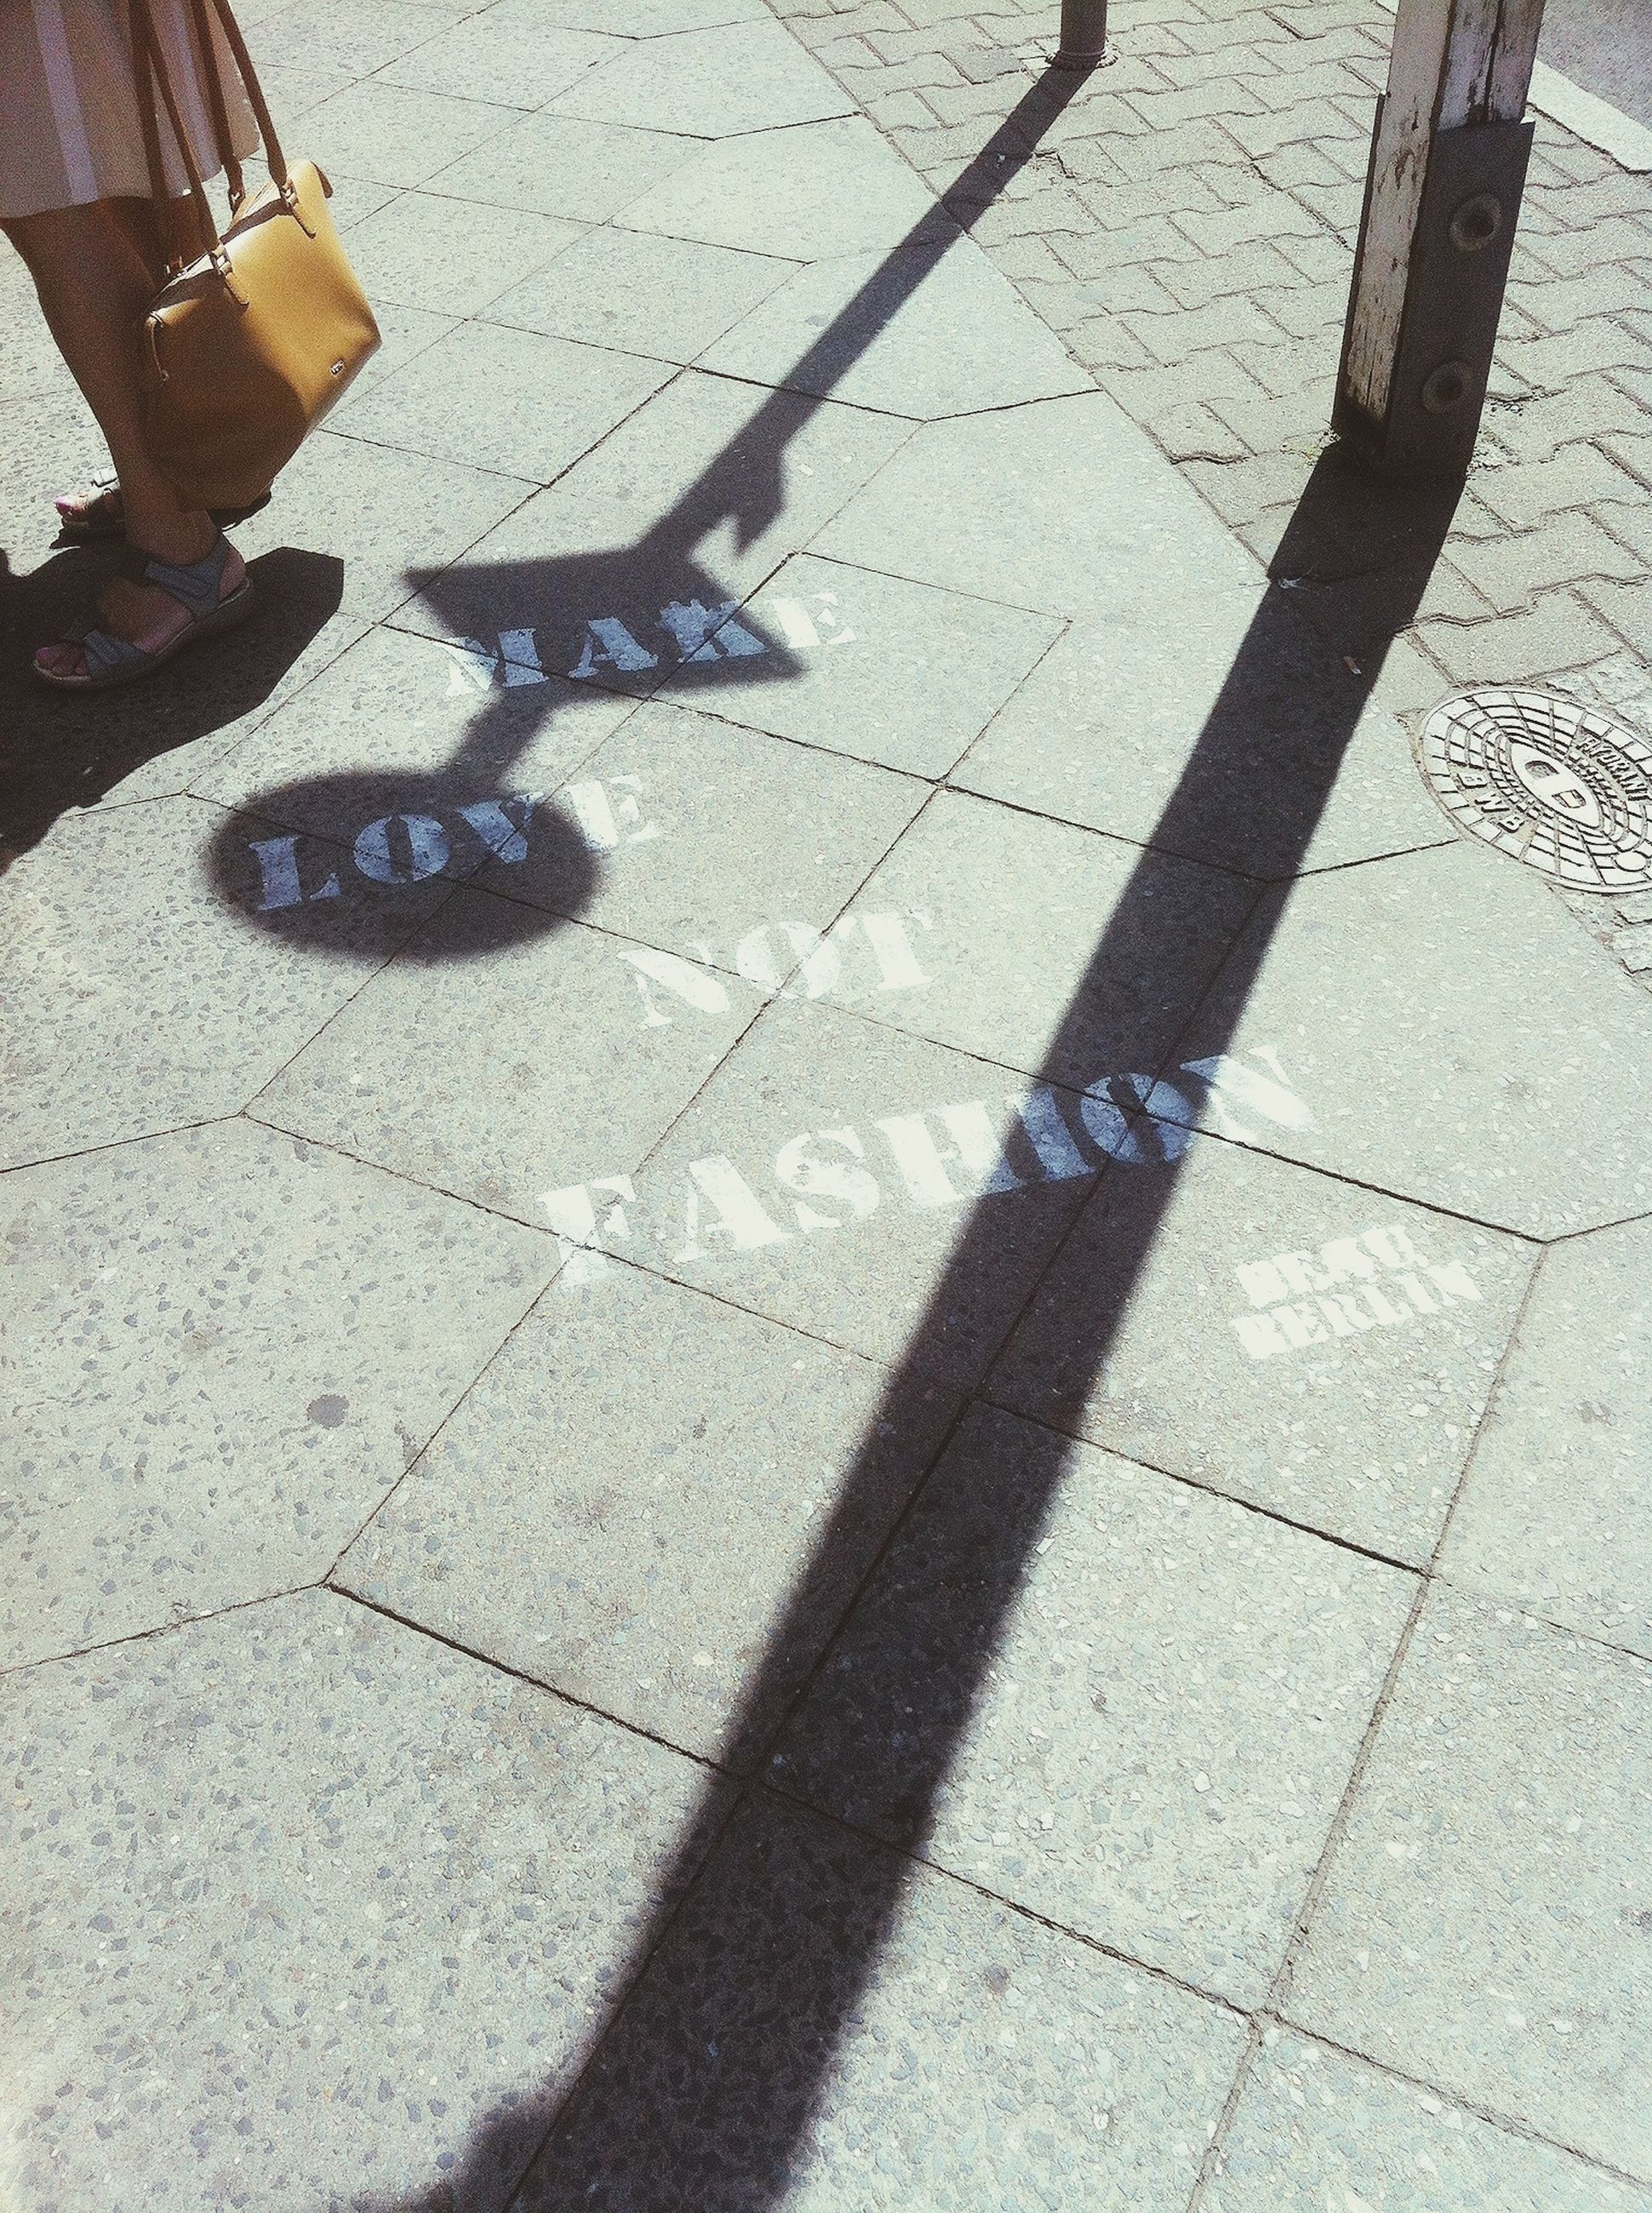 shadow, street, high angle view, sunlight, paving stone, cobblestone, sidewalk, footpath, road, focus on shadow, outdoors, day, pavement, unrecognizable person, road marking, transportation, lifestyles, walking